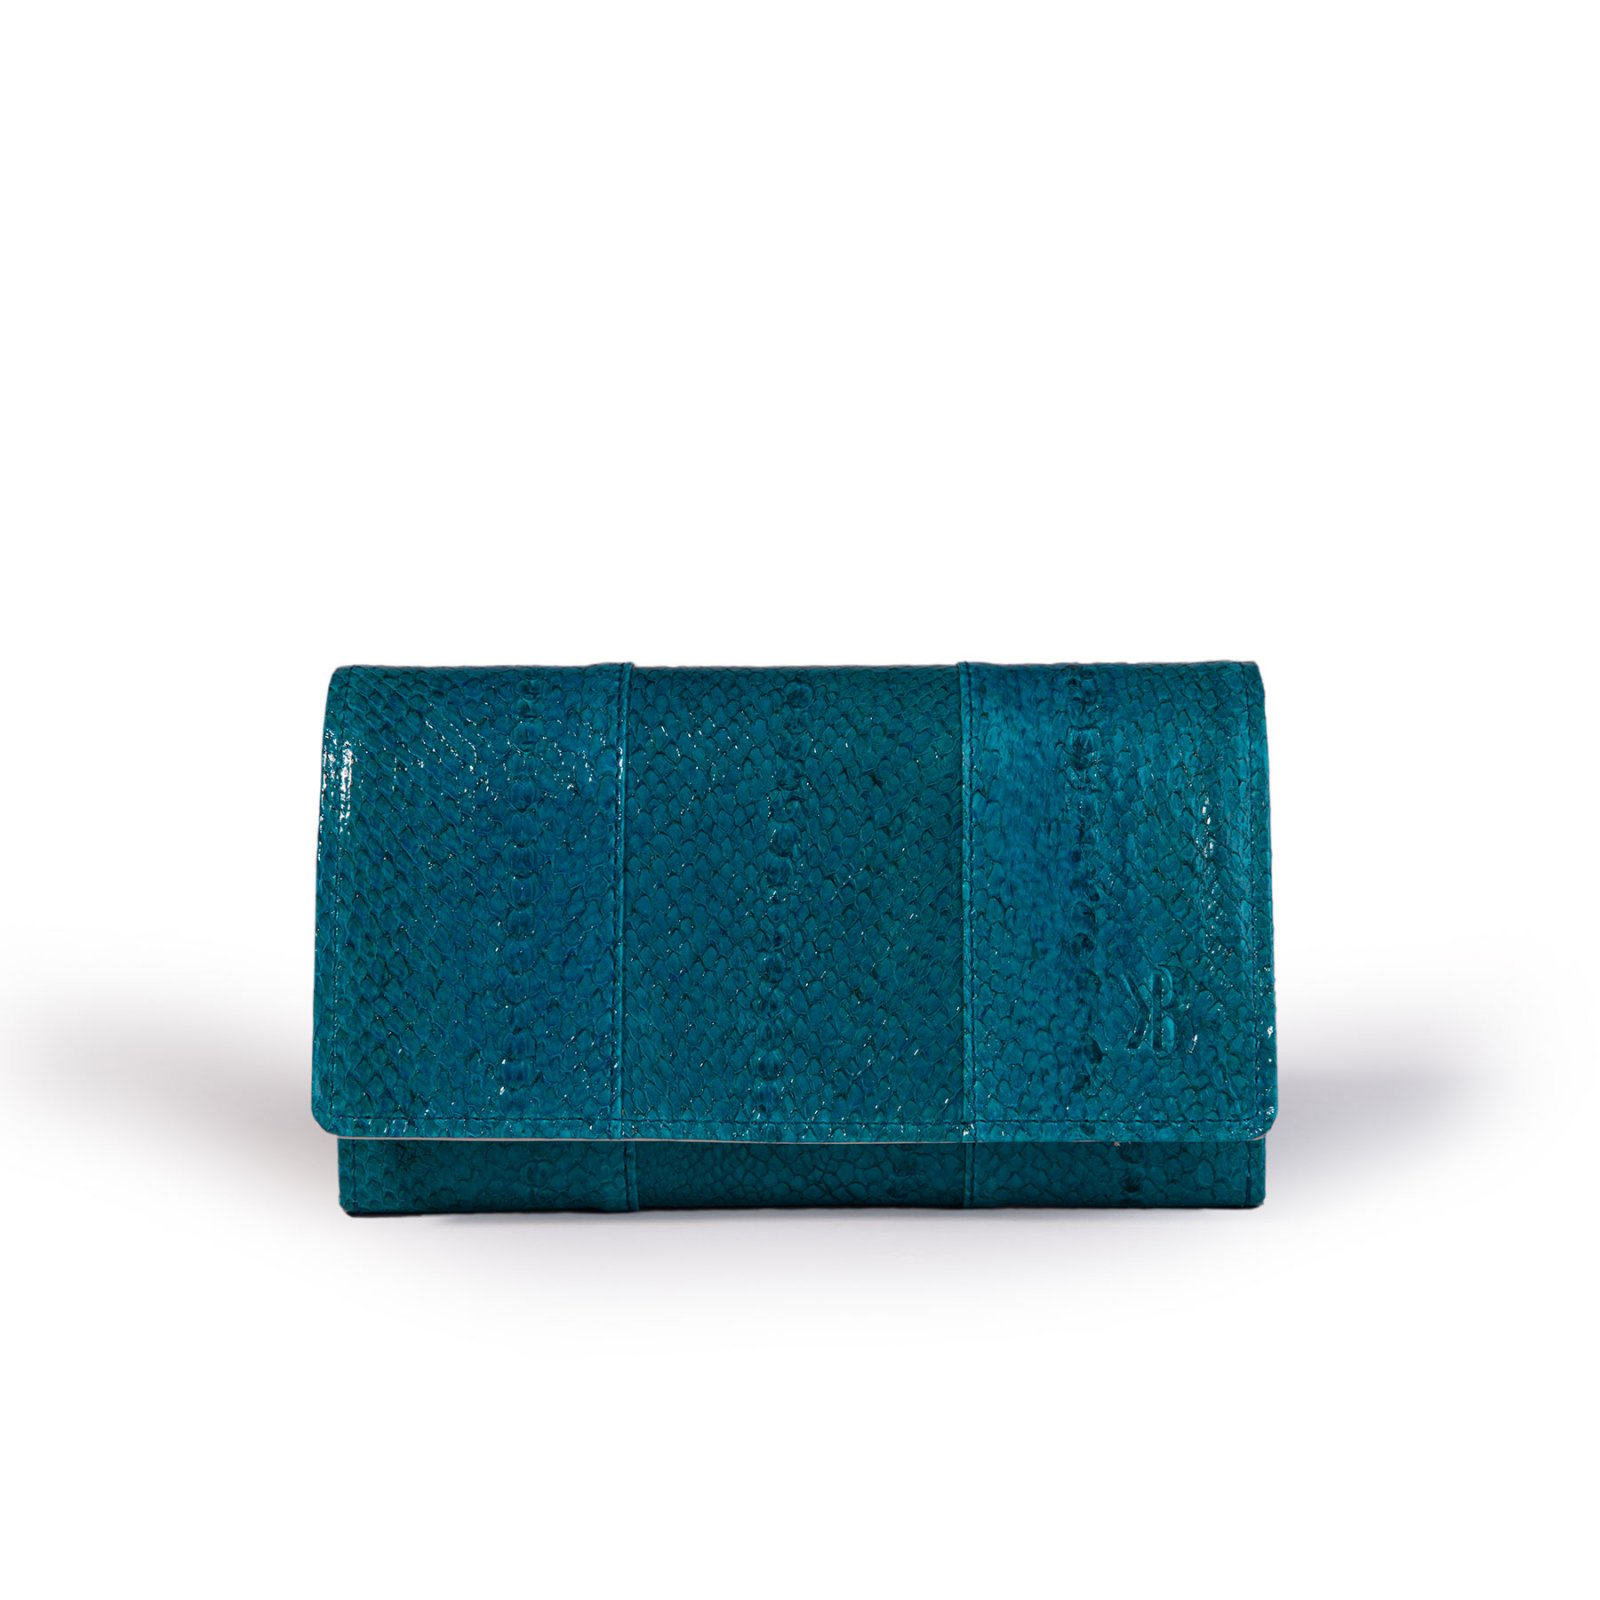 renee-paris-blue-banka-wallet-1